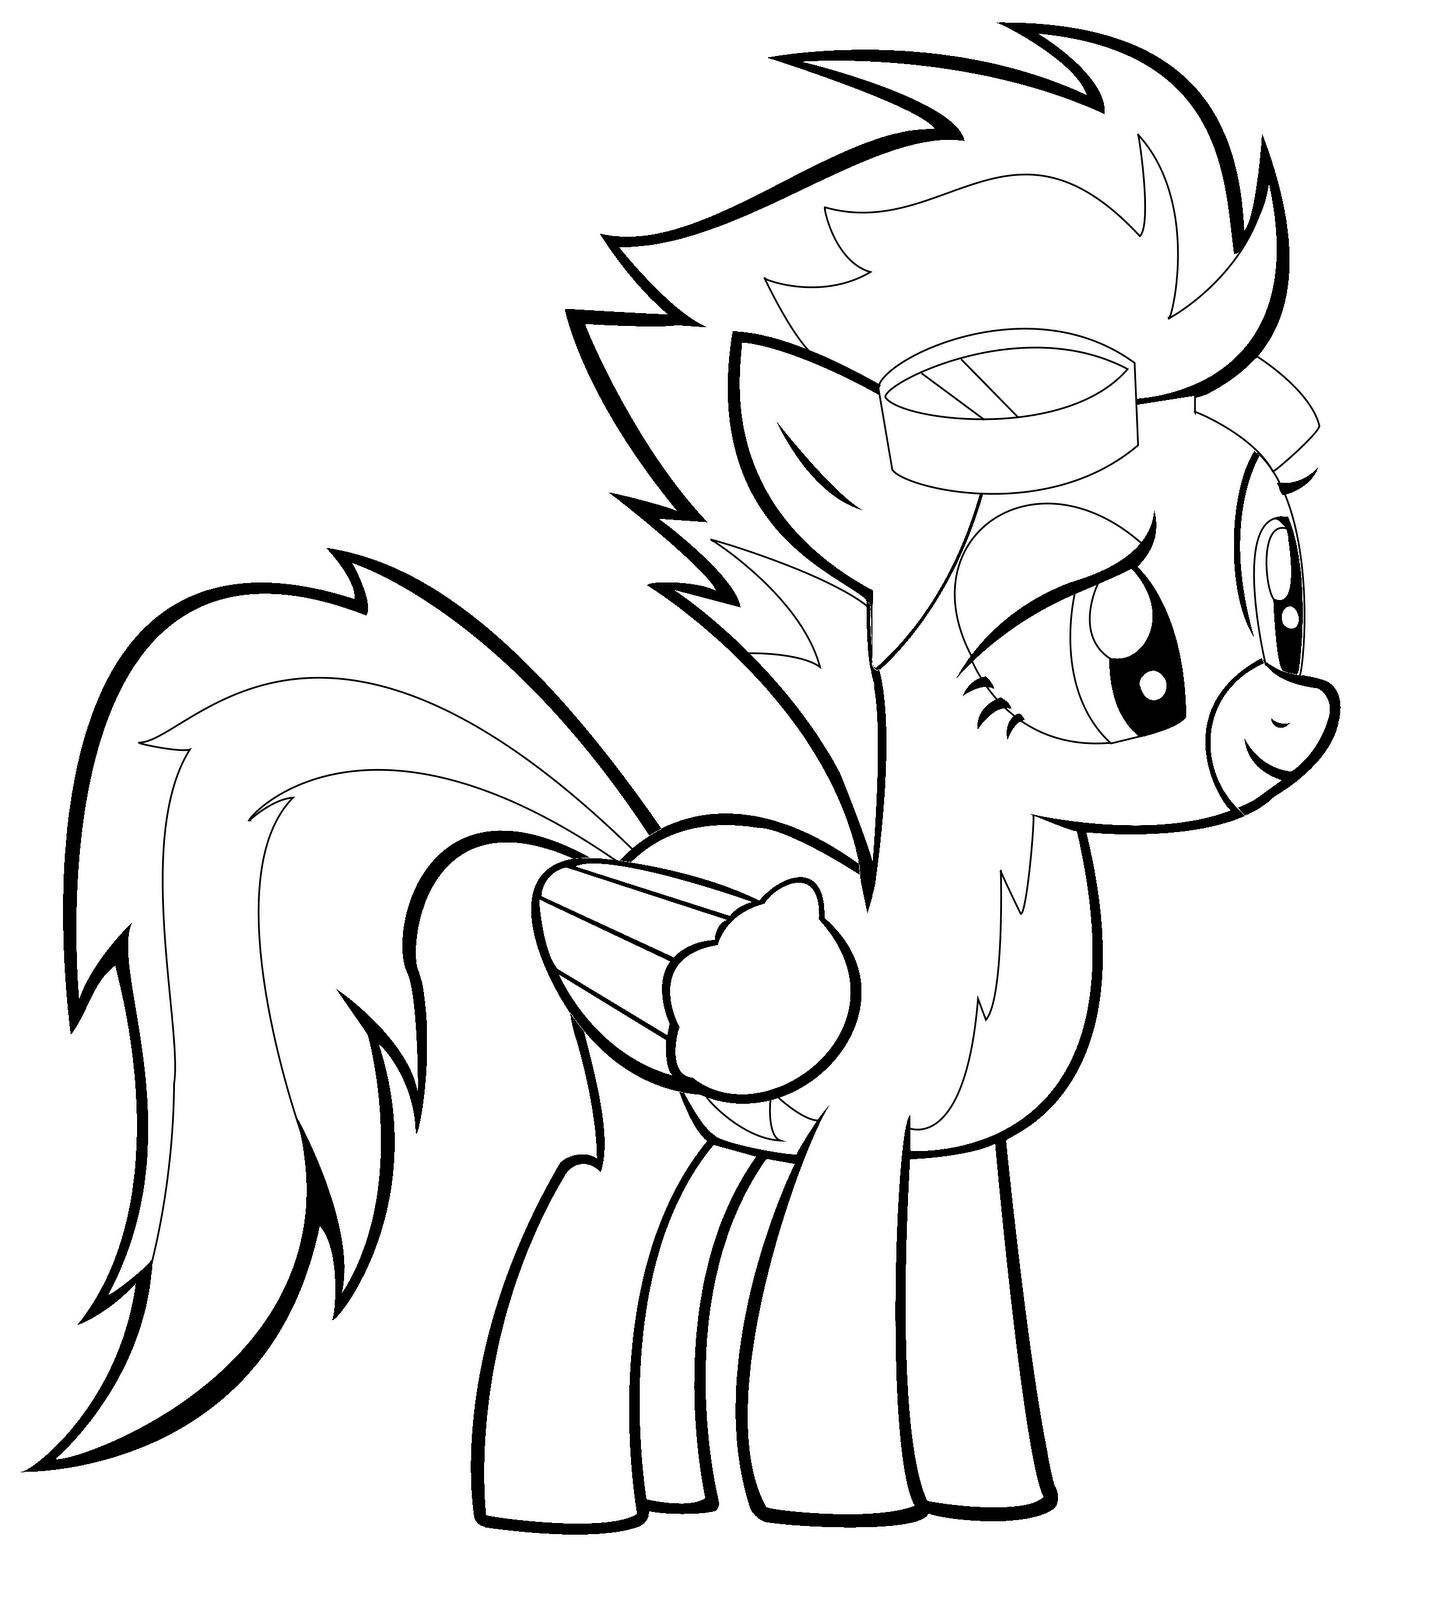 1437x1600 Surprising My Little Pony Spitfire Coloring Pages With Fluttershy